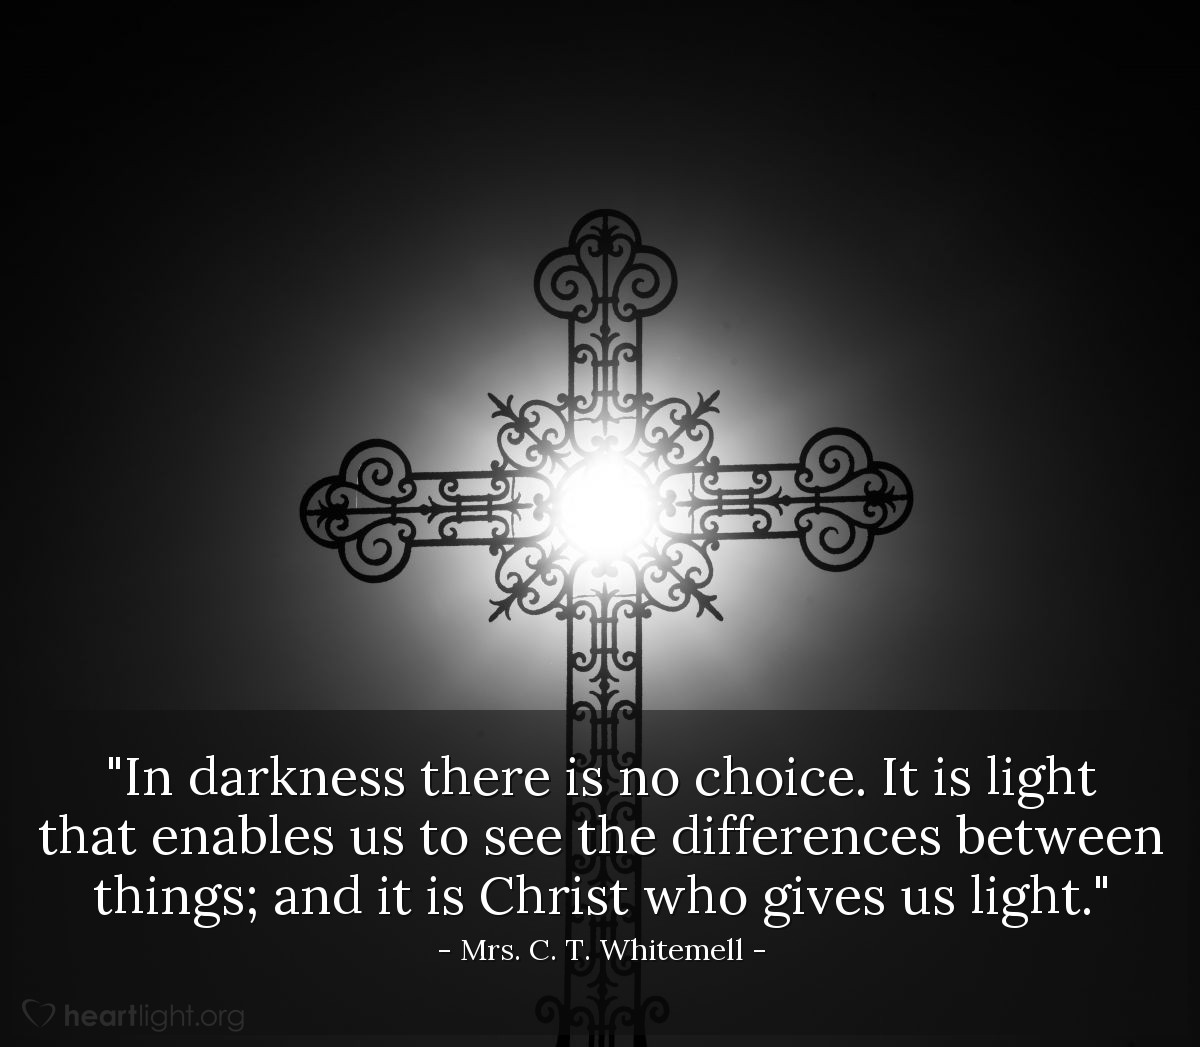 """Illustration of Mrs. C. T. Whitemell — """"In darkness there is no choice. It is light that enables us to see the differences between things; and it is Christ who gives us light."""""""